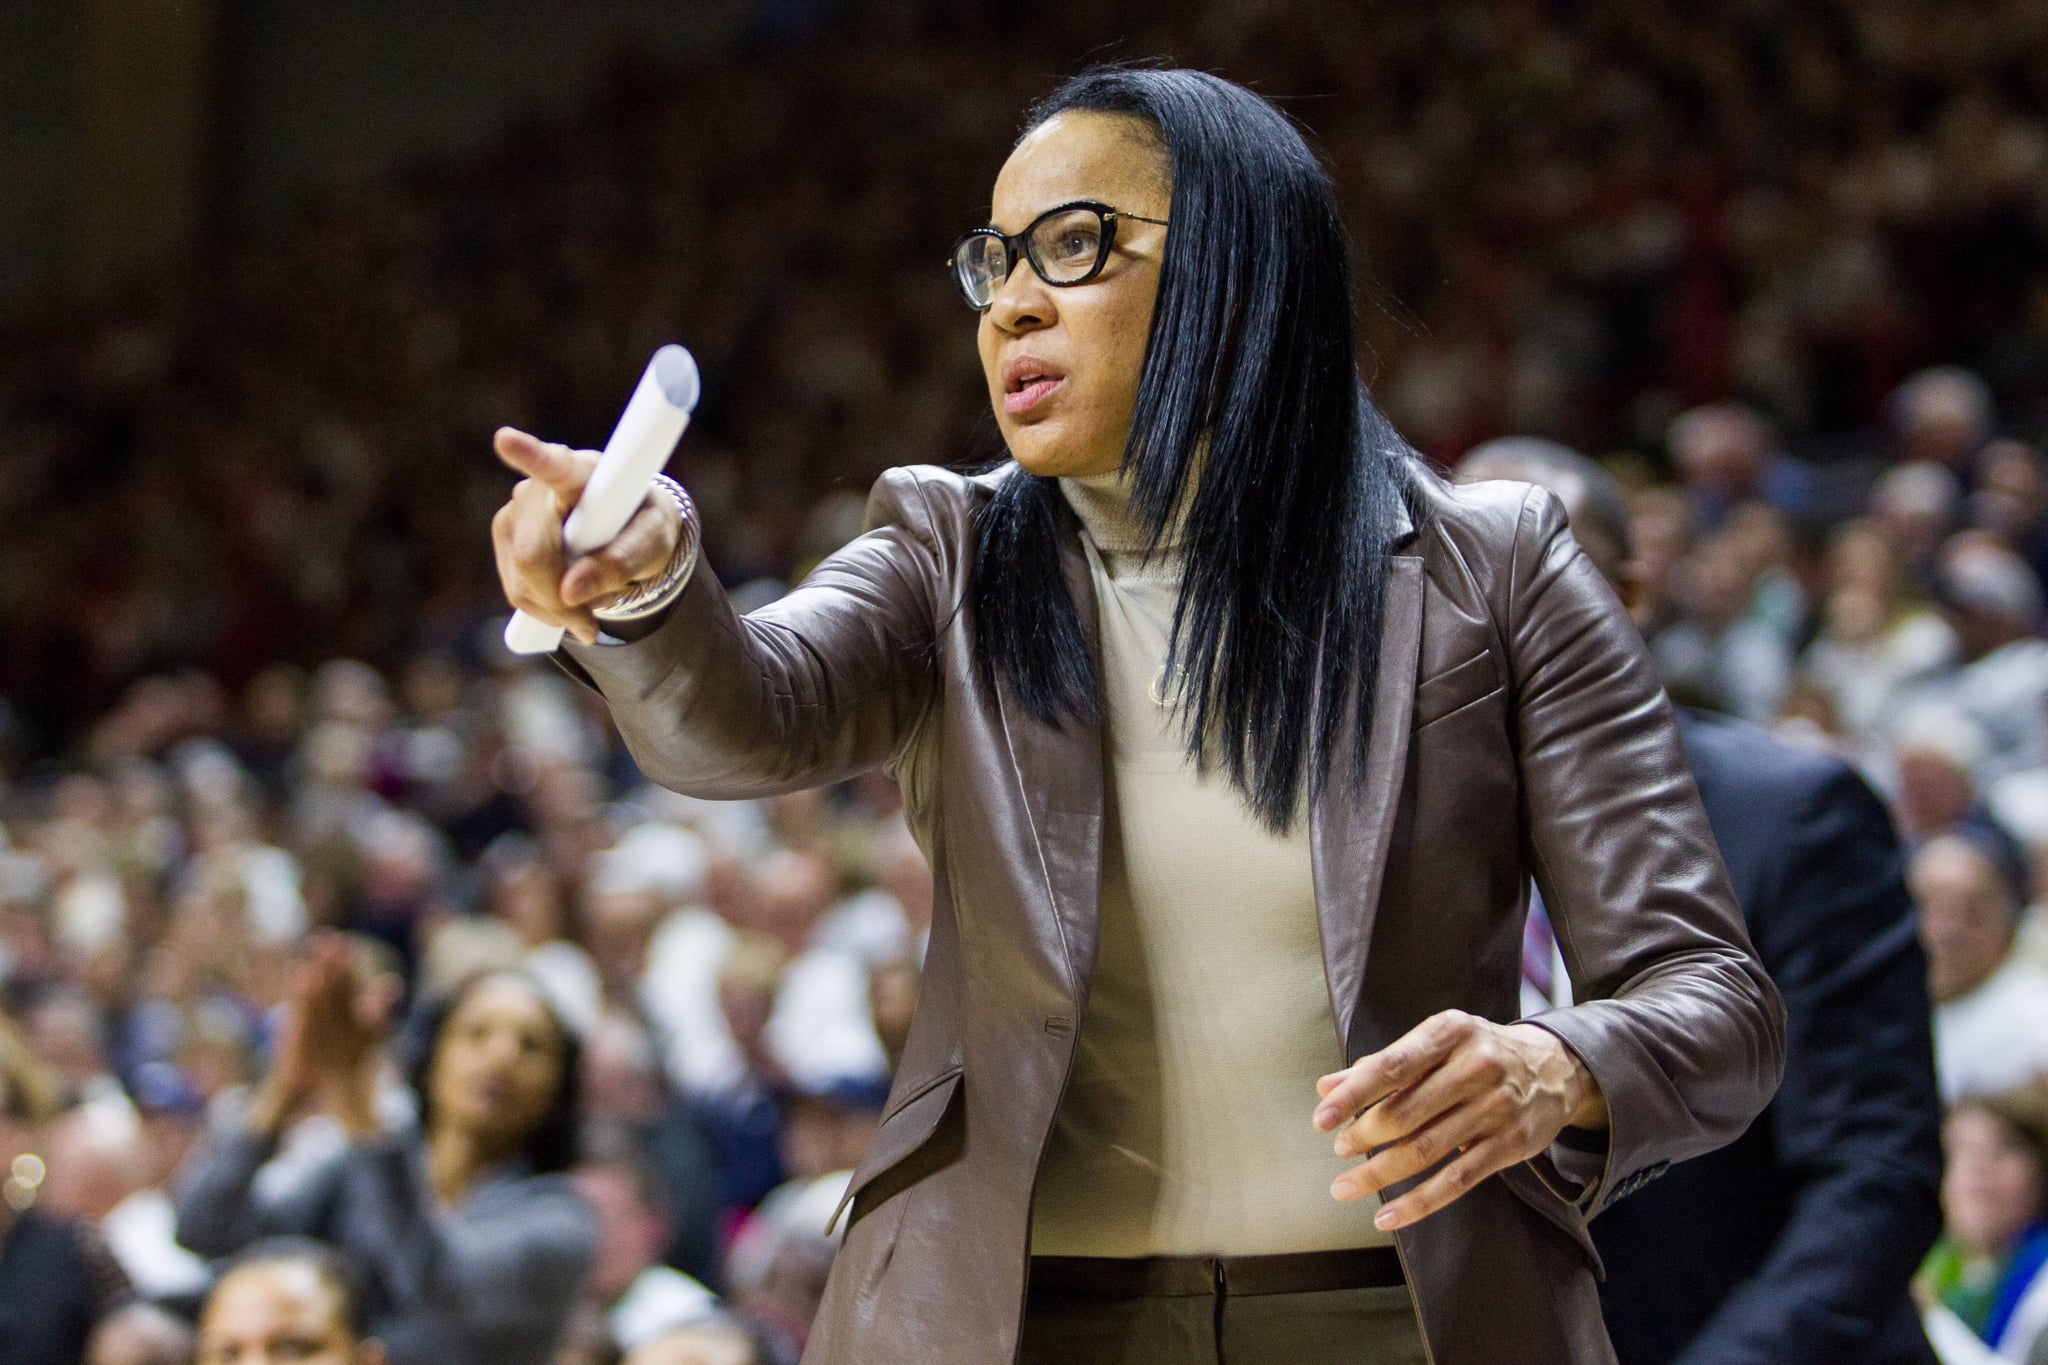 STORRS, CT - FEBRUARY 13: South Caroloina's Head Coach Dawn Staley on the side lines during the first half of a women's division 1 basketball game between 6th ranked University of South Carolina and the #1 UConn Huskies on February 13, 2017, at the Harry A. Gampel Pavilion in Storrs, CT. (Photo by David Hahn/Icon Sportswire via Getty Images)